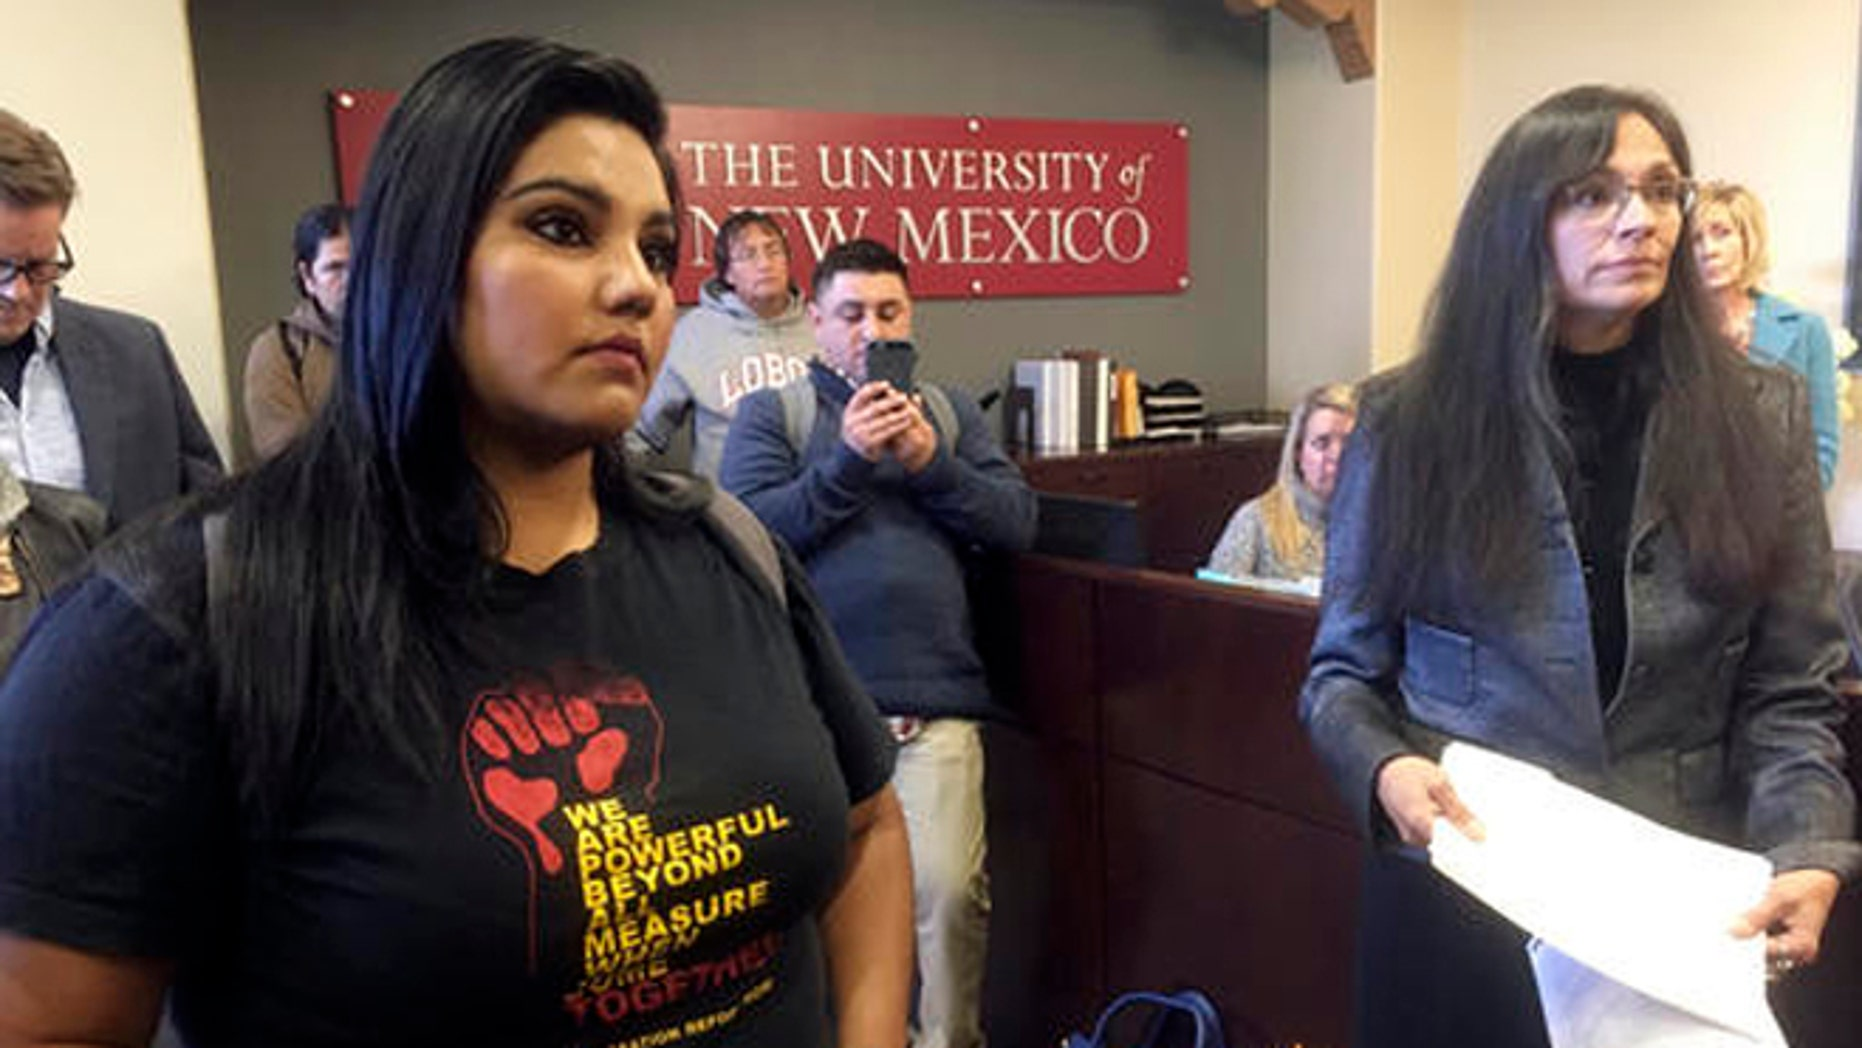 """University of New Mexico student LuzHilda Campos, left, and Chicano studies professor Irene Vasquez, right, present a letter with hundreds of signatures on Friday, Nov. 18, 2016, to school president Bob Frank asking him to declare the campus a """"sanctuary university,"""" in Albuquerque, N.M. A group of professors at the largest university in the nation's most Hispanic state are asking for more protection of immigrant students following the election of Republican Donald Trump. (AP Photo/Russell Contreras)"""